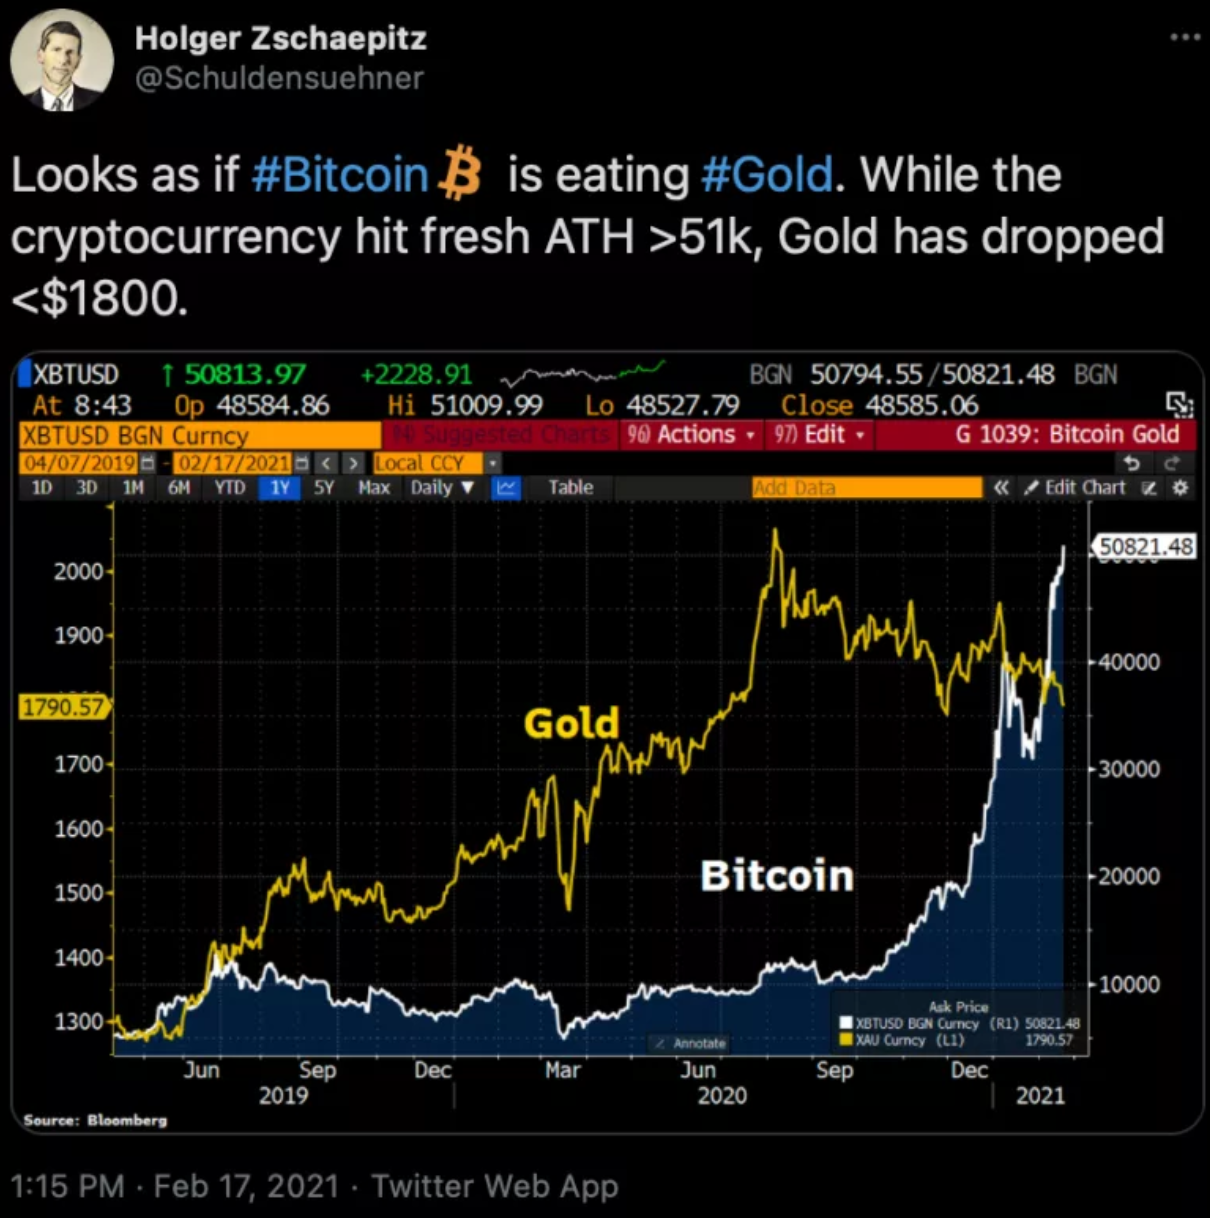 Cash Is Trash, Dump Gold, Buy Bitcoin!